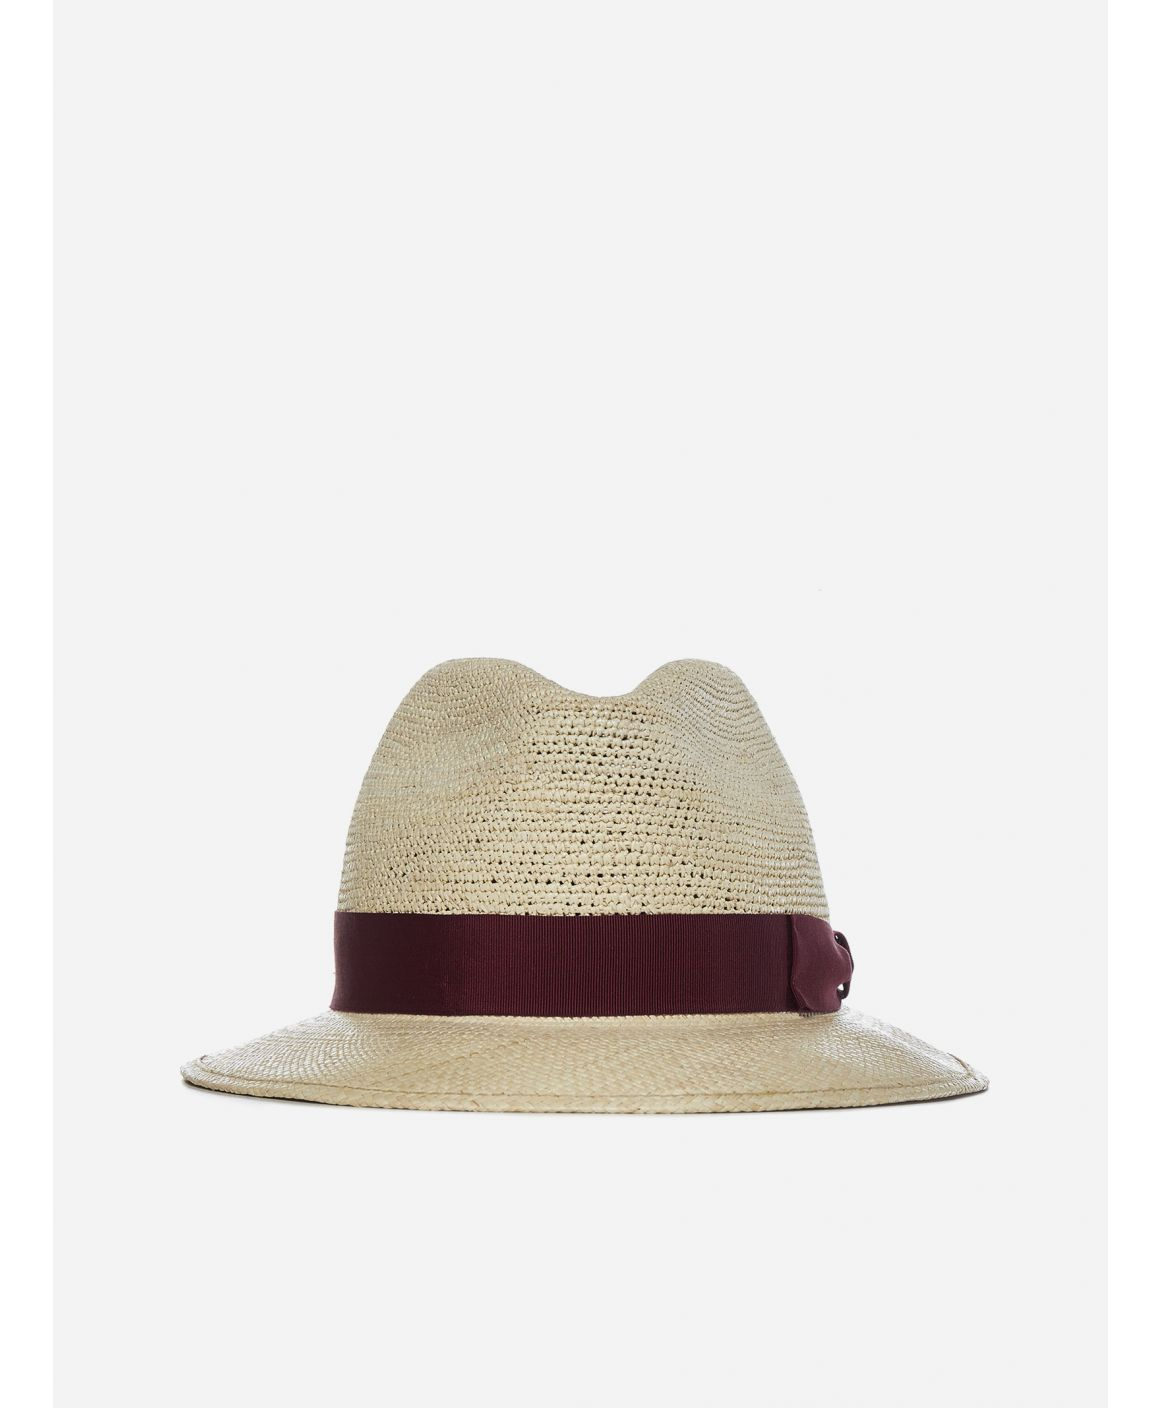 Medium brim semi-crochet Panama hat